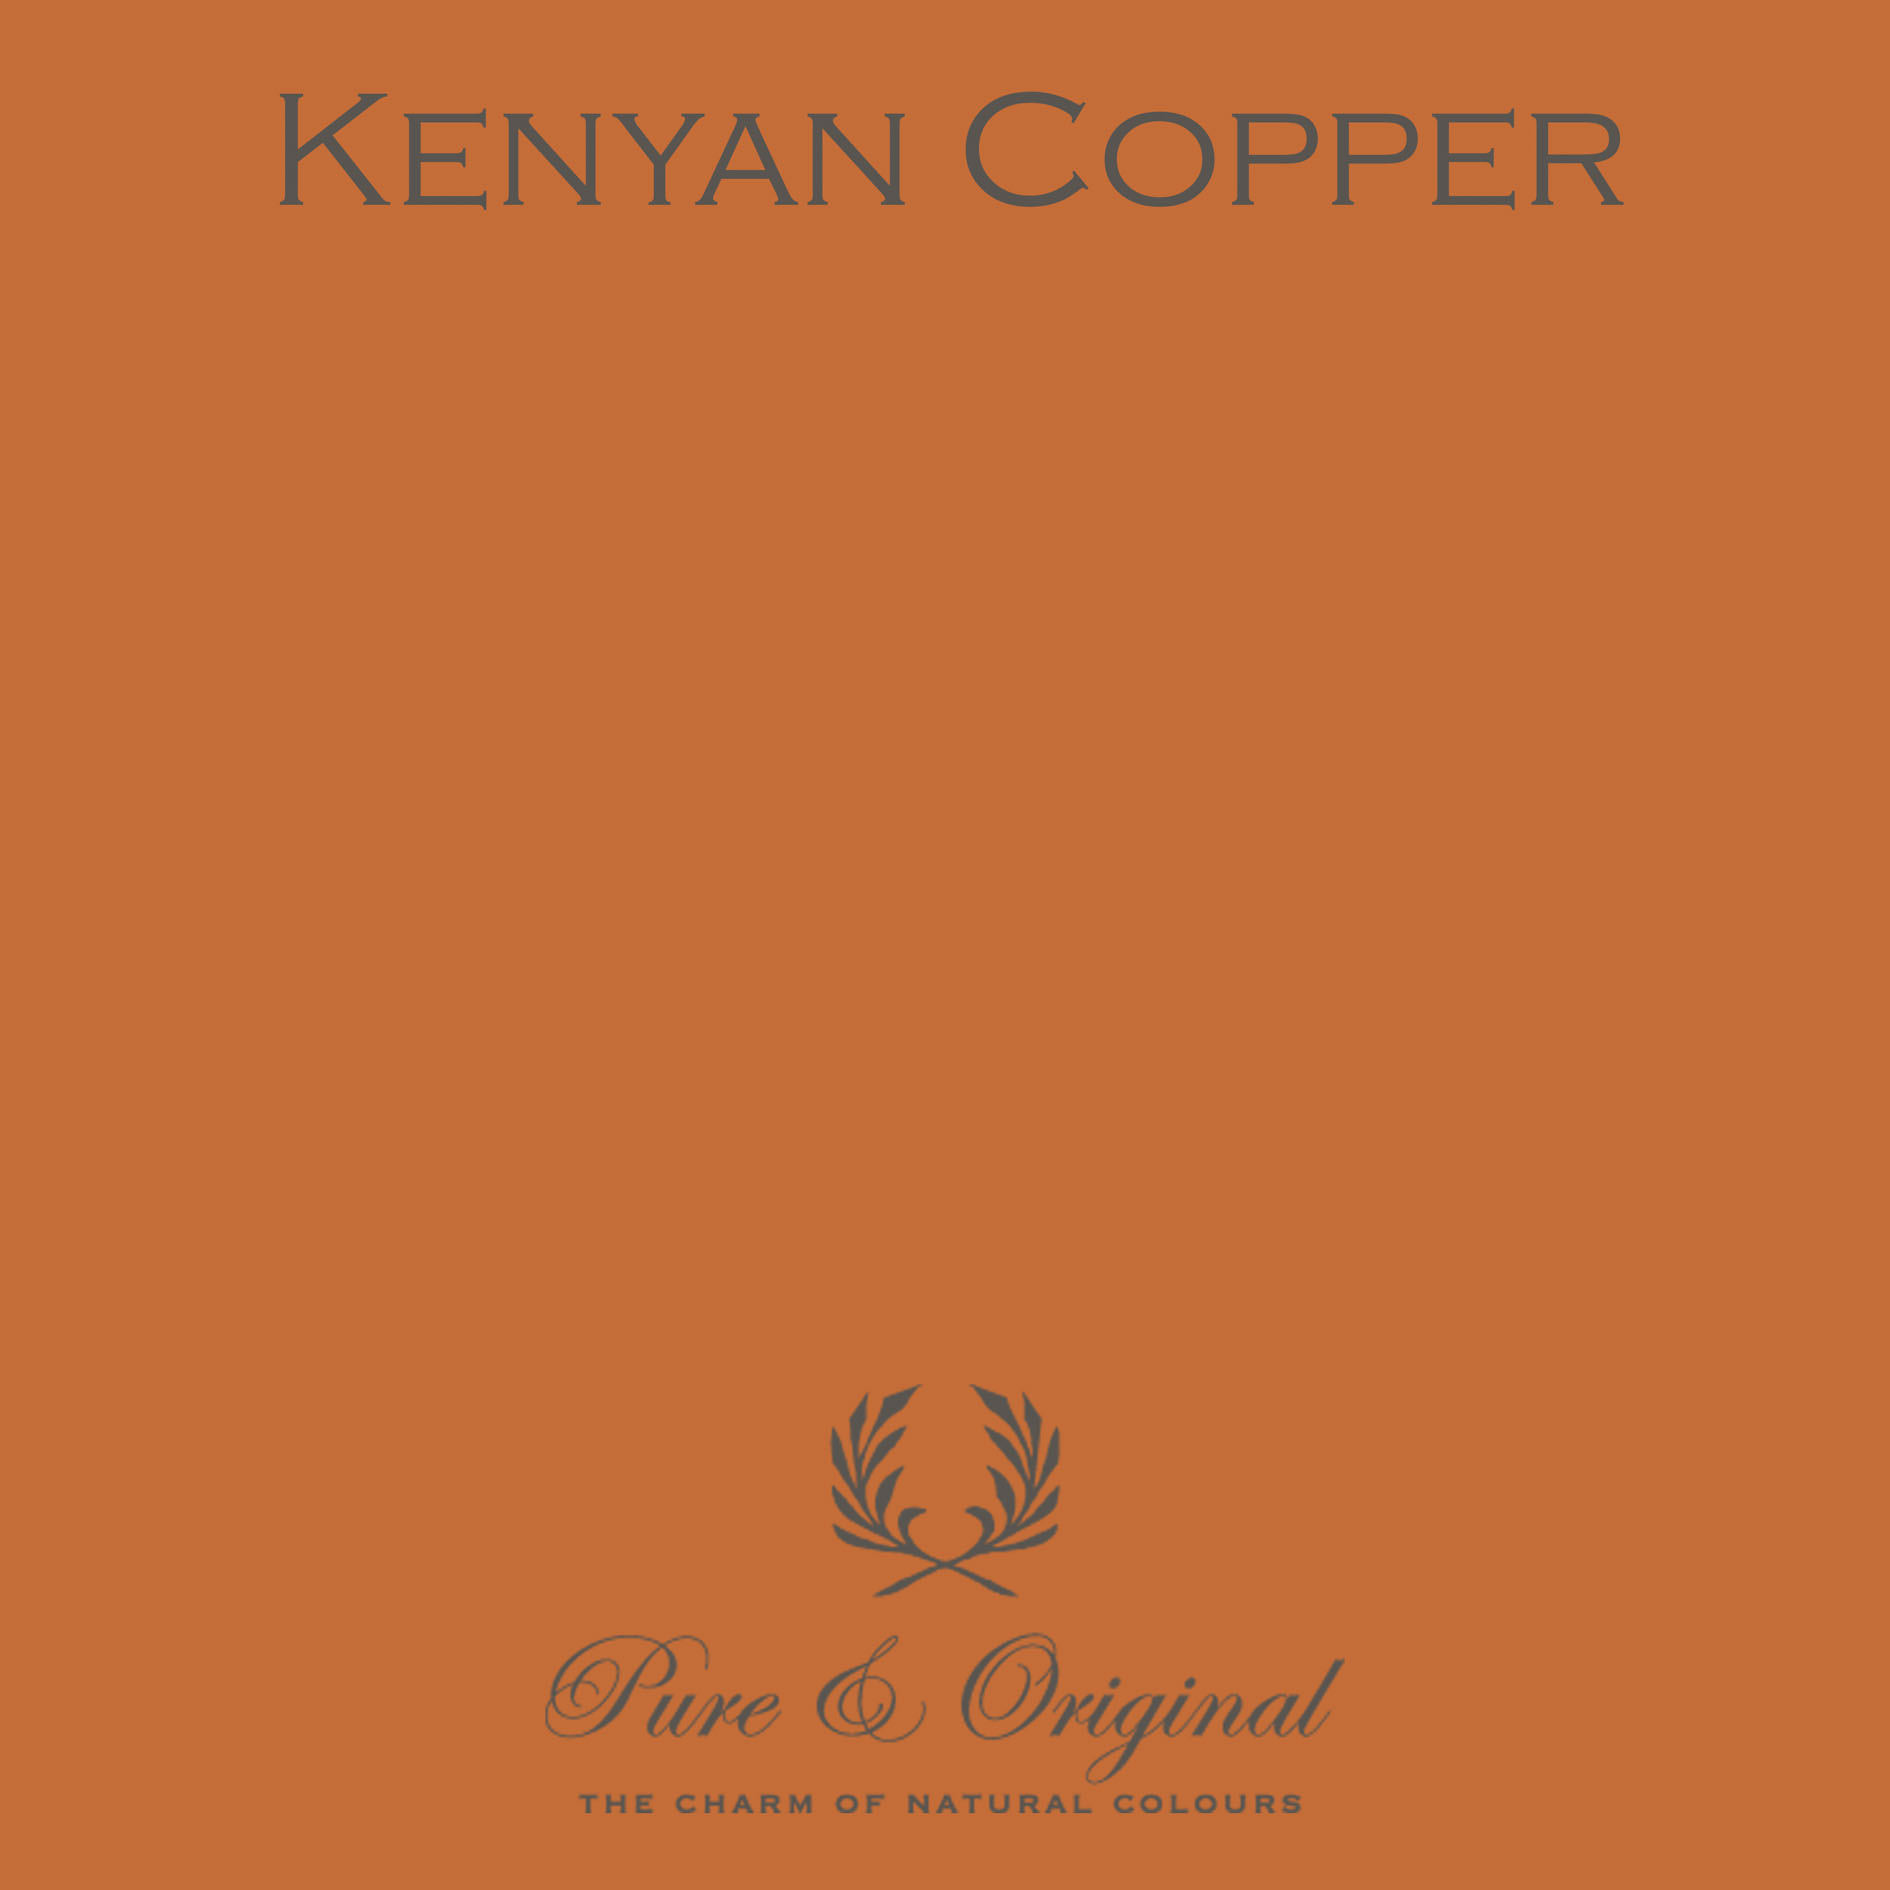 Pure & Original Kenyan Copper